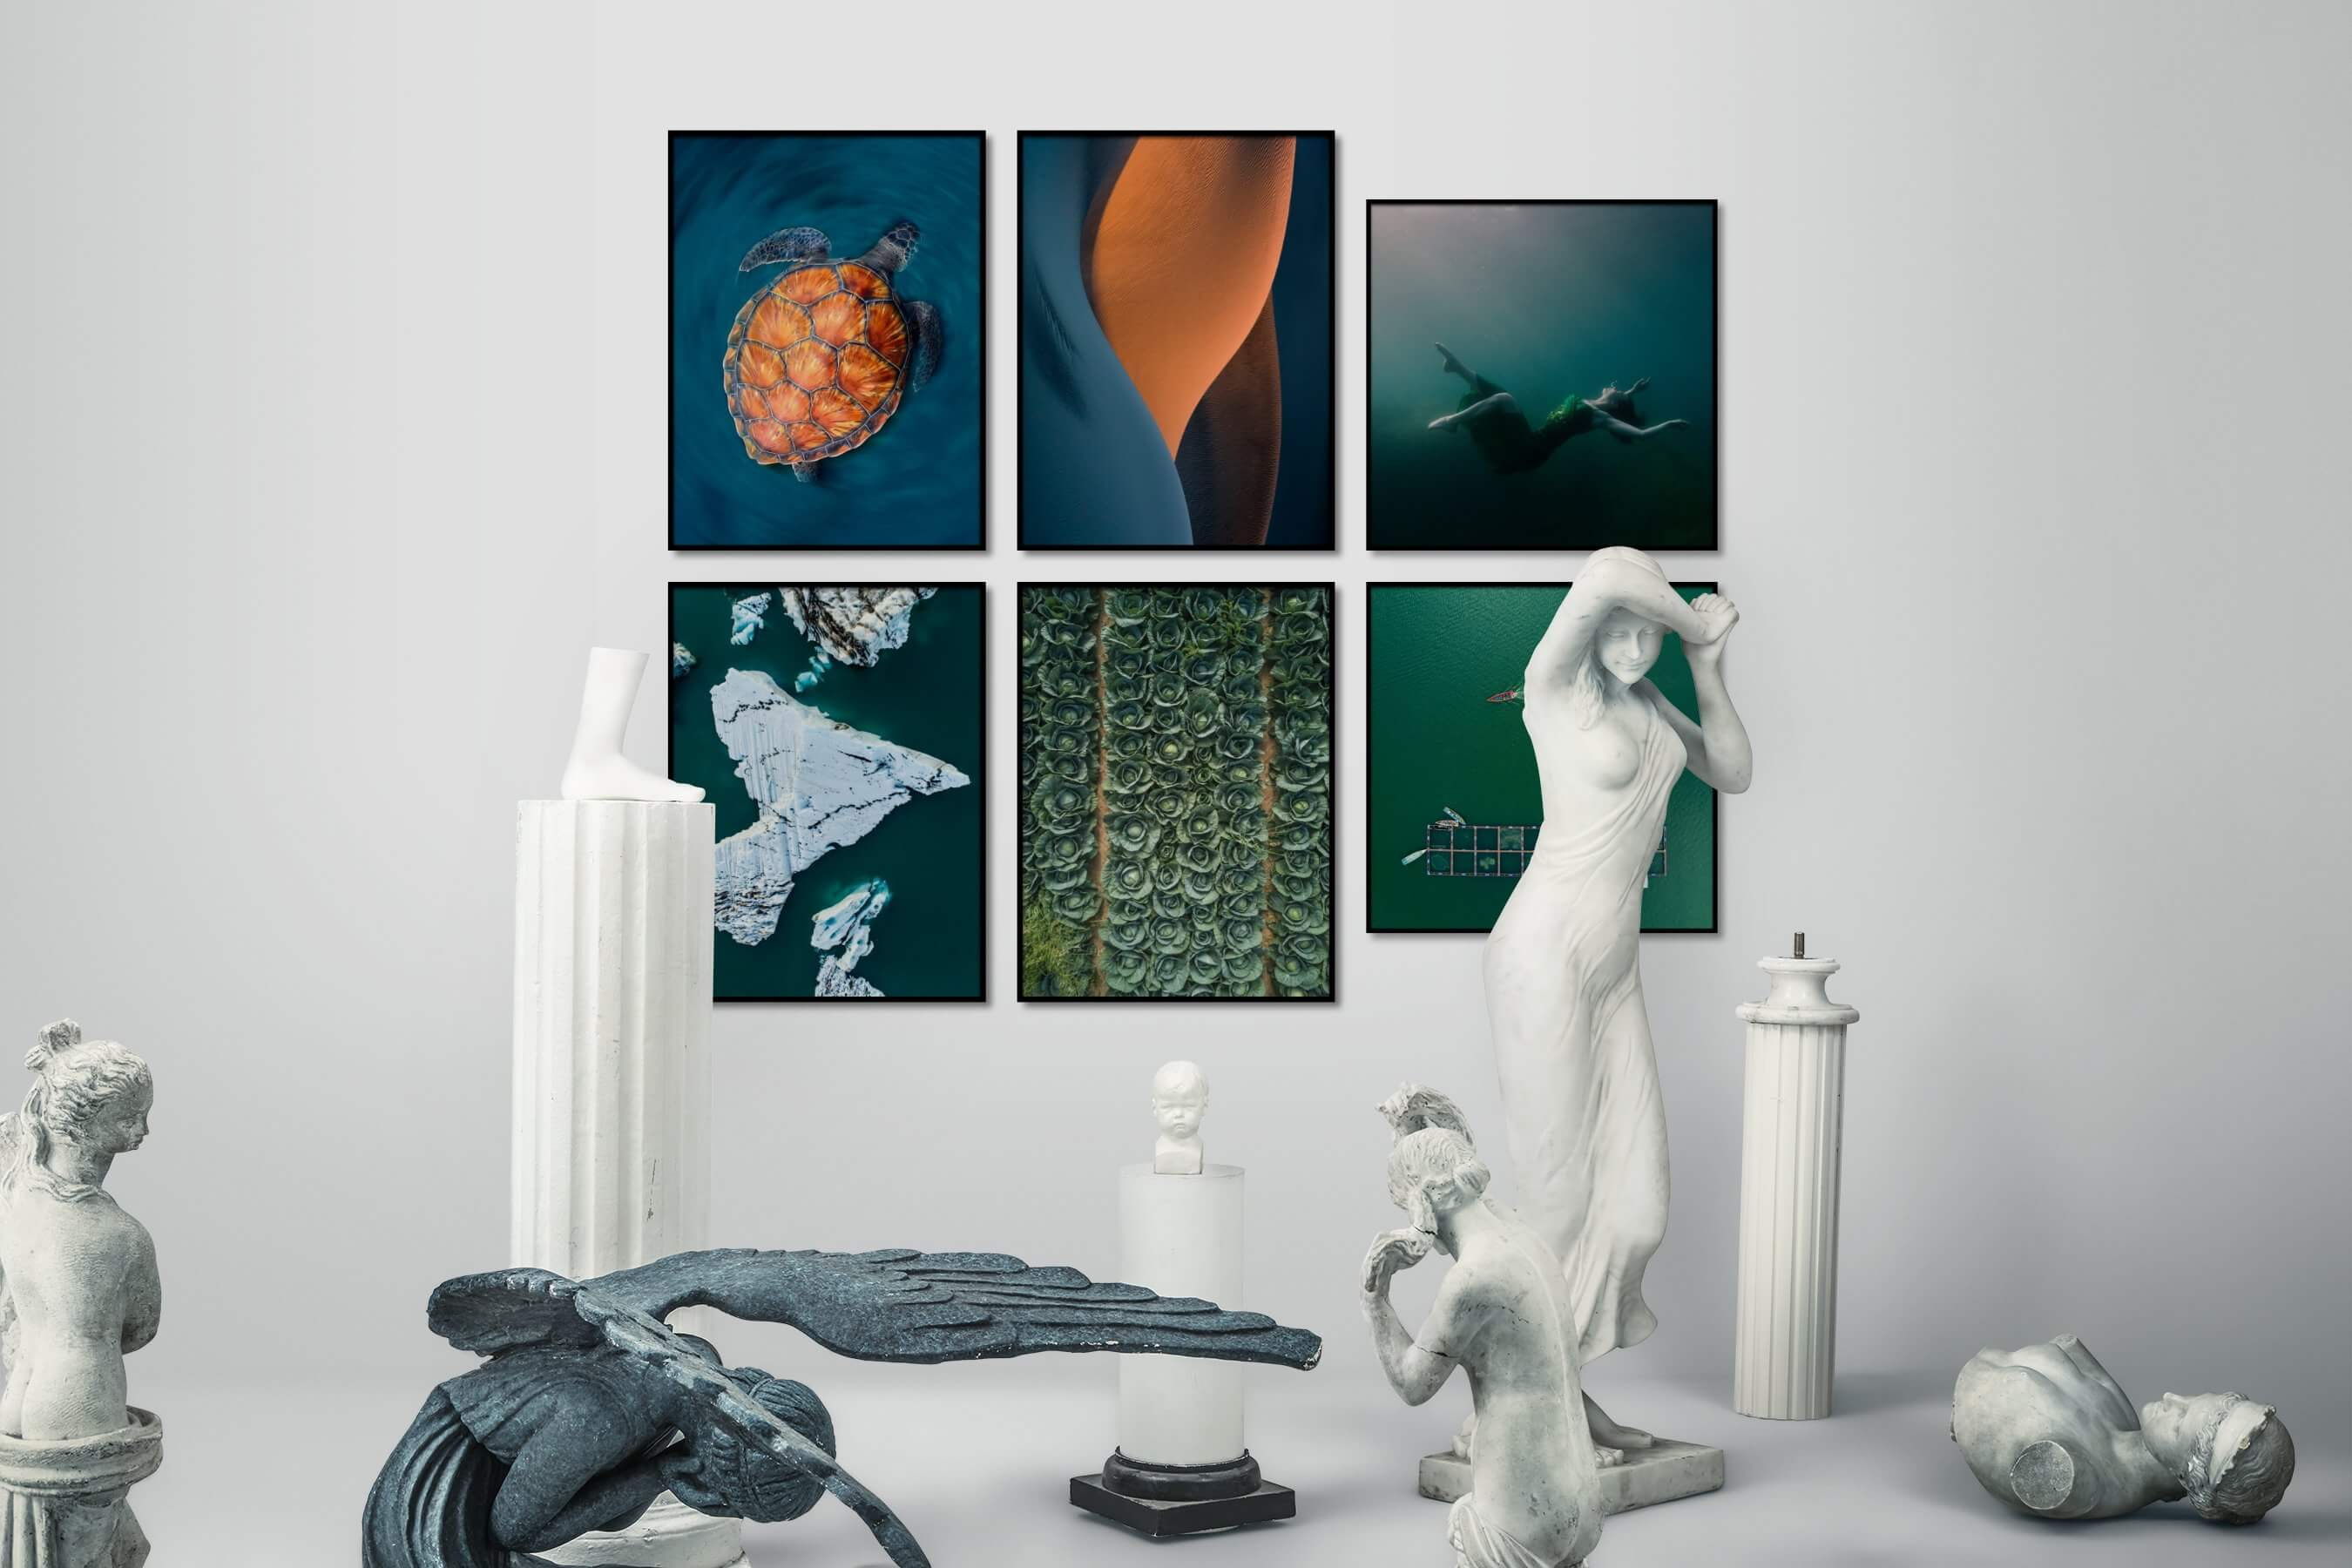 Gallery wall idea with six framed pictures arranged on a wall depicting Animals, For the Minimalist, Nature, For the Moderate, For the Maximalist, Country Life, Fashion & Beauty, and Beach & Water